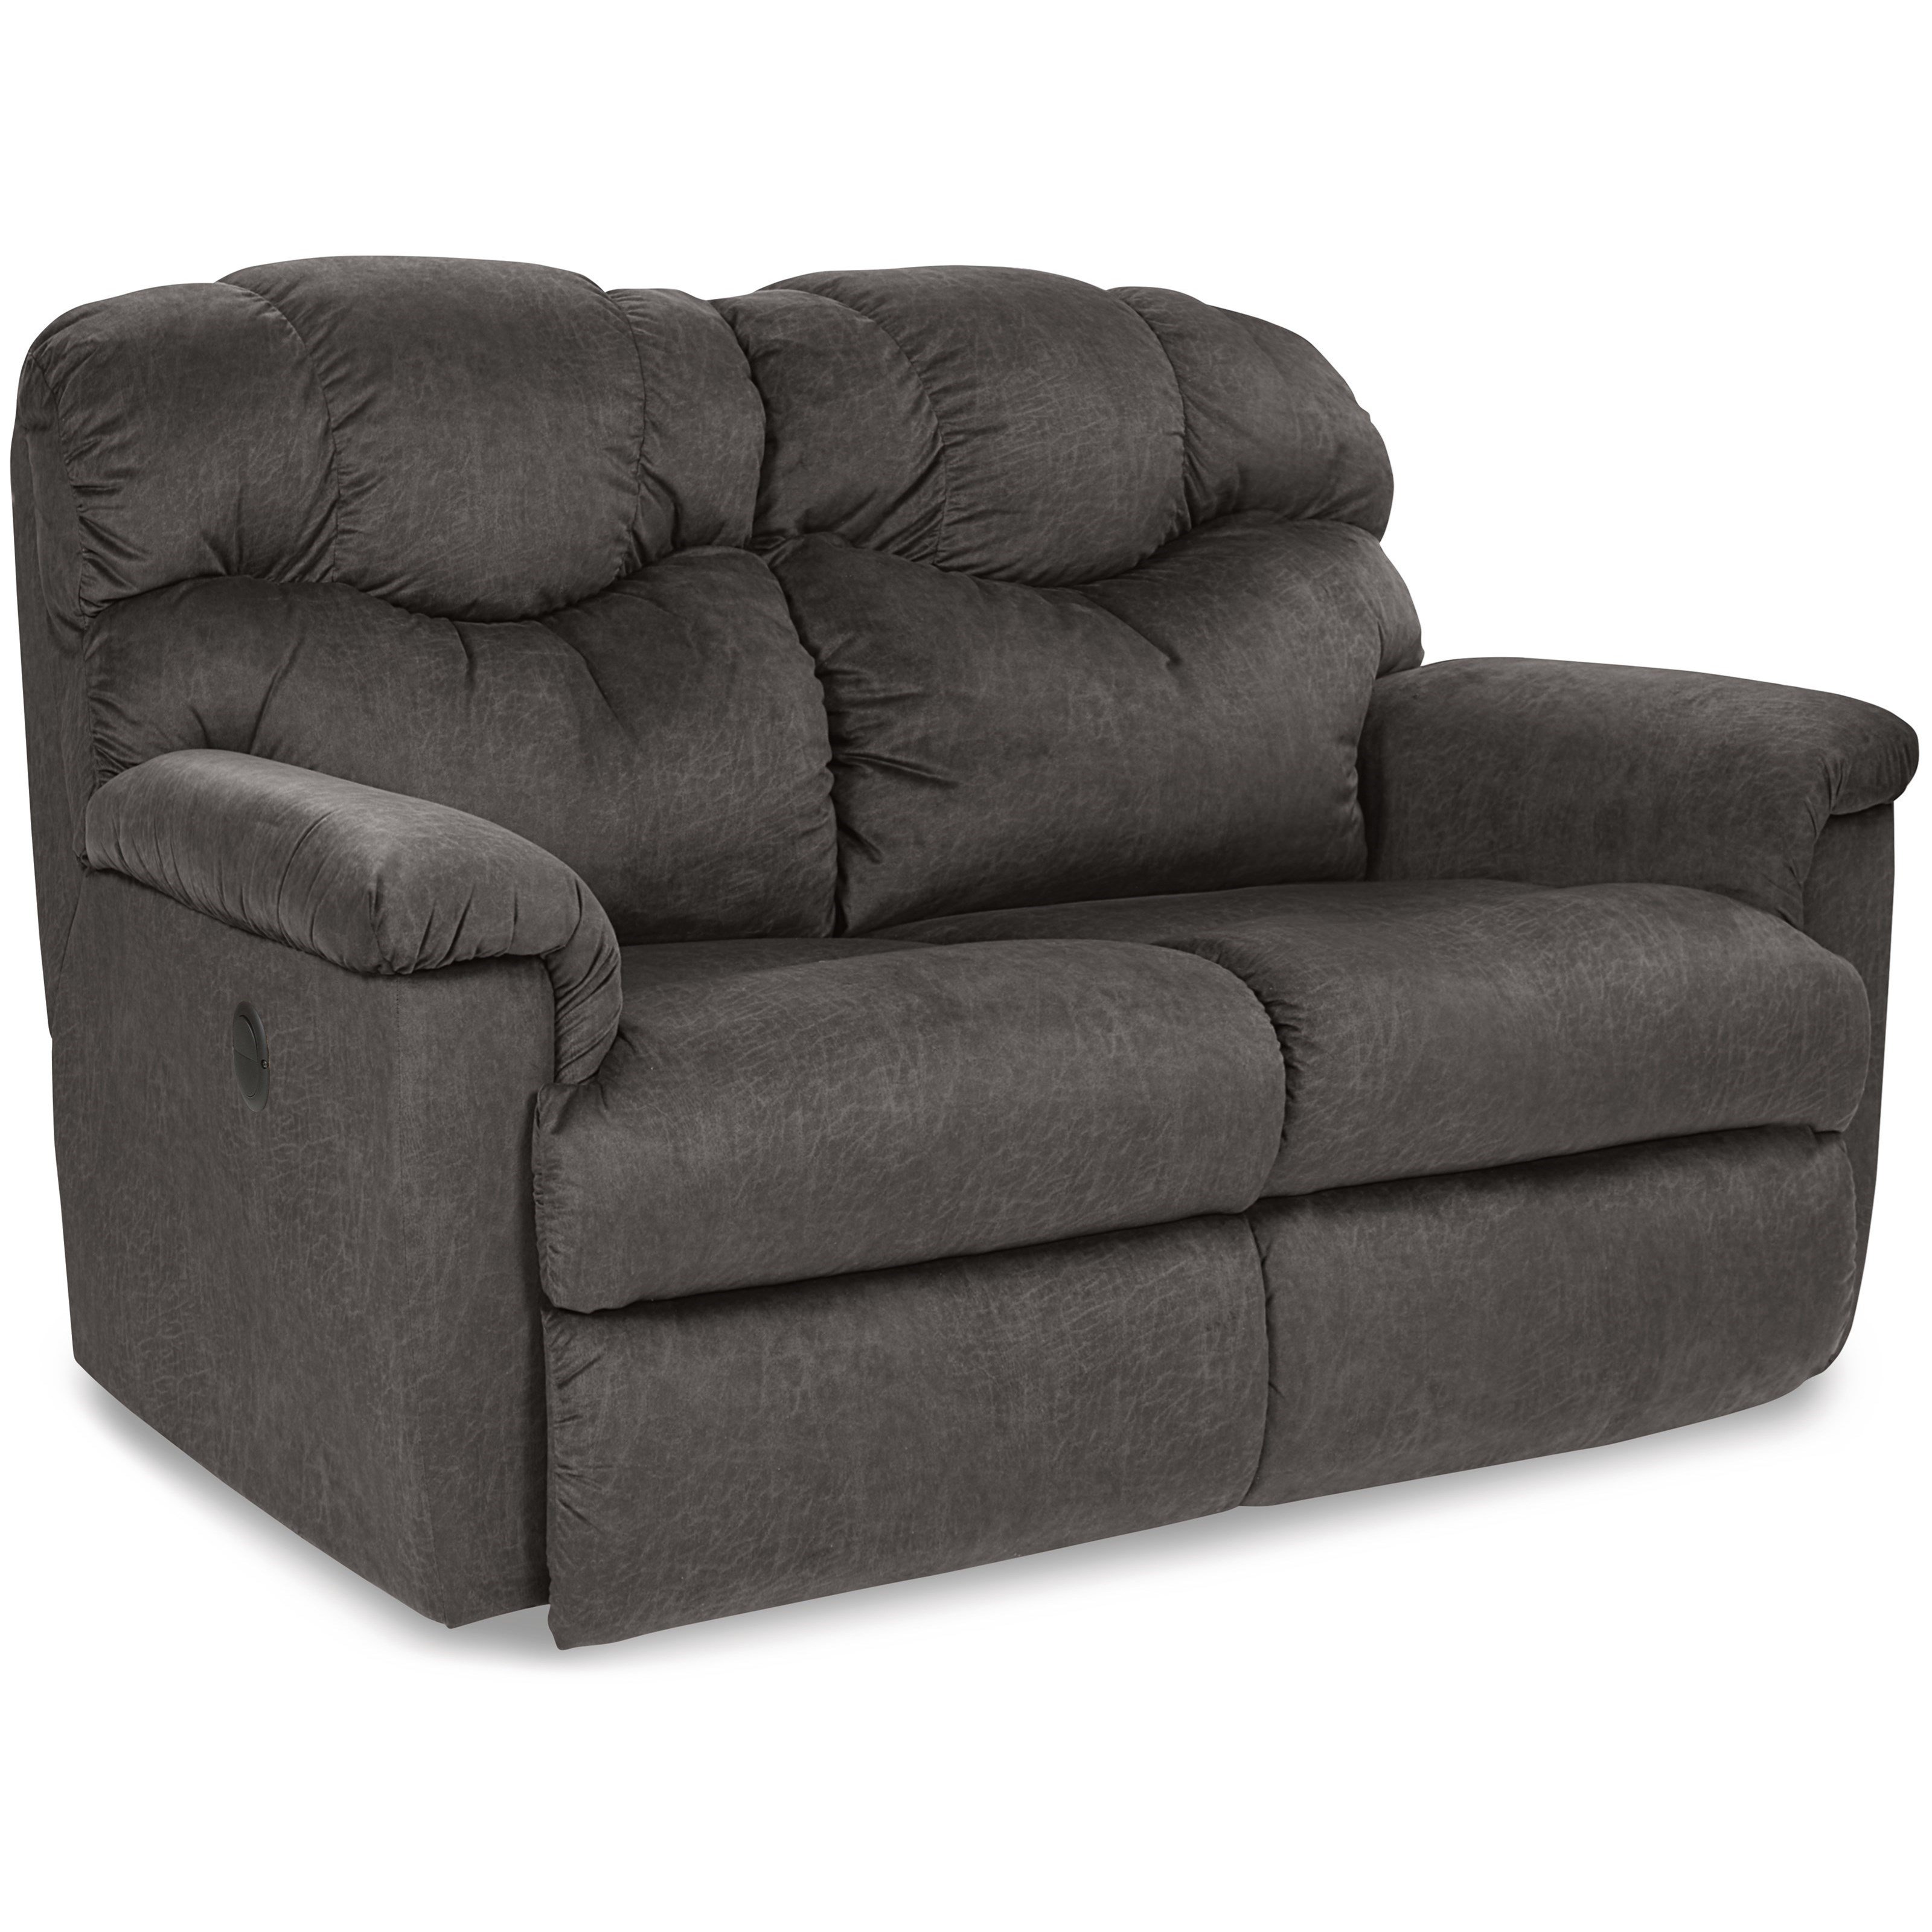 La-Z-Time® Power-Recline™ Reclining Loveseat with Power Headrests and USB Charging Ports